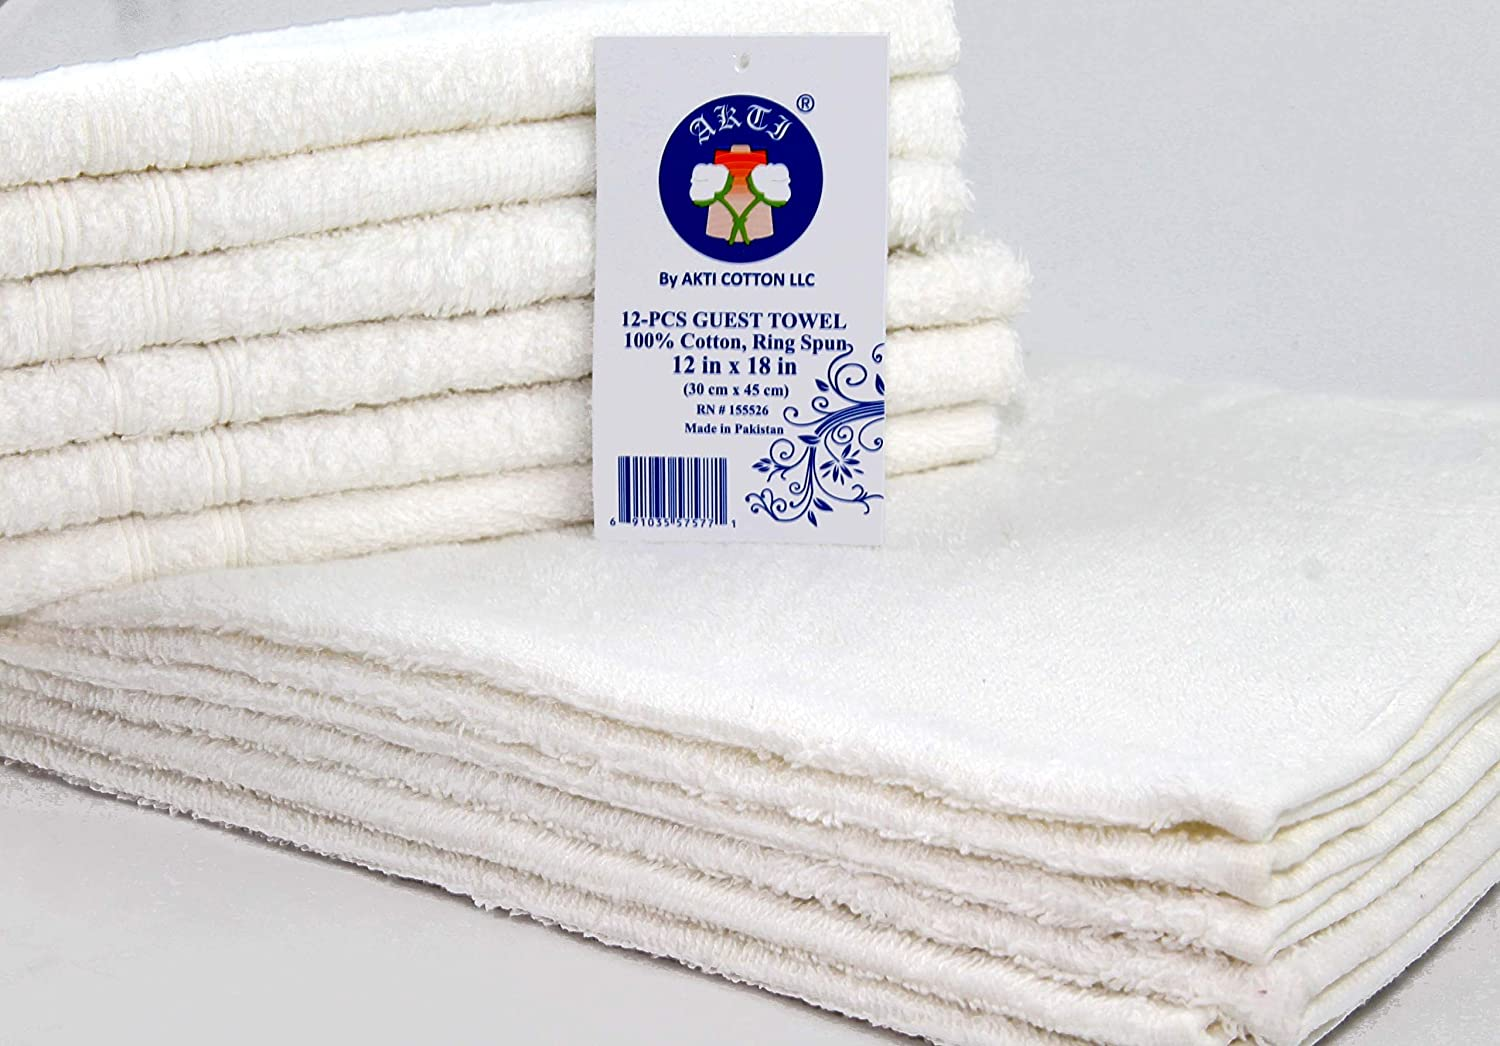 AKTI COTTON - Great Deal! (Pack of 12) Budget Friendly WASHCLOTH, Multipurpose Use, 100% Cotton, 12 x 18 inches. Extra Long WASHCLOTH.Wash Before Use 81pRKSB0g6L